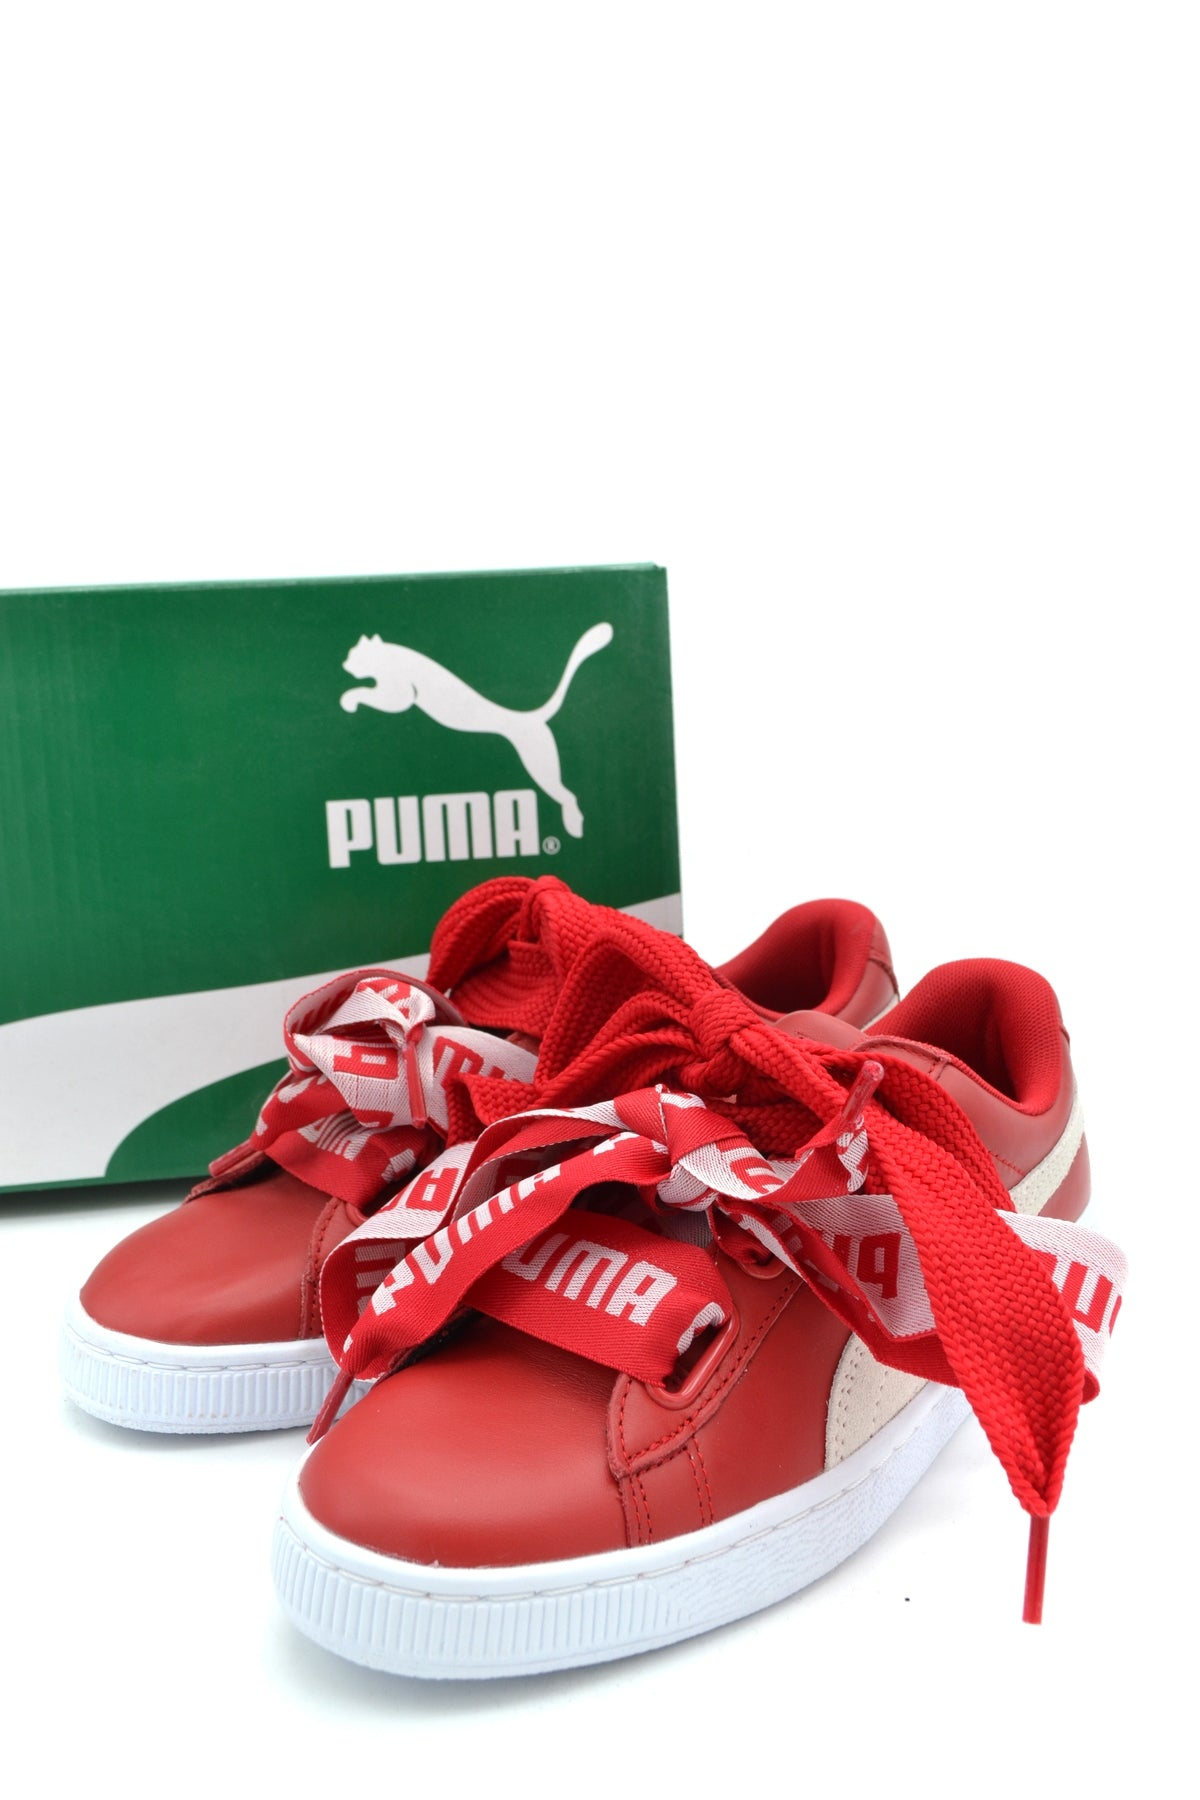 Shoes Puma-Sneakers - WOMAN-Product Details Type Of Accessory: ShoesSeason: Spring / SummerTerms: New With LabelMain Color: RedGender: WomanMade In: VietnamManufacturer Part Number: 364082 03Size: EuYear: 2018Composition: Leather 100%-Keyomi-Sook